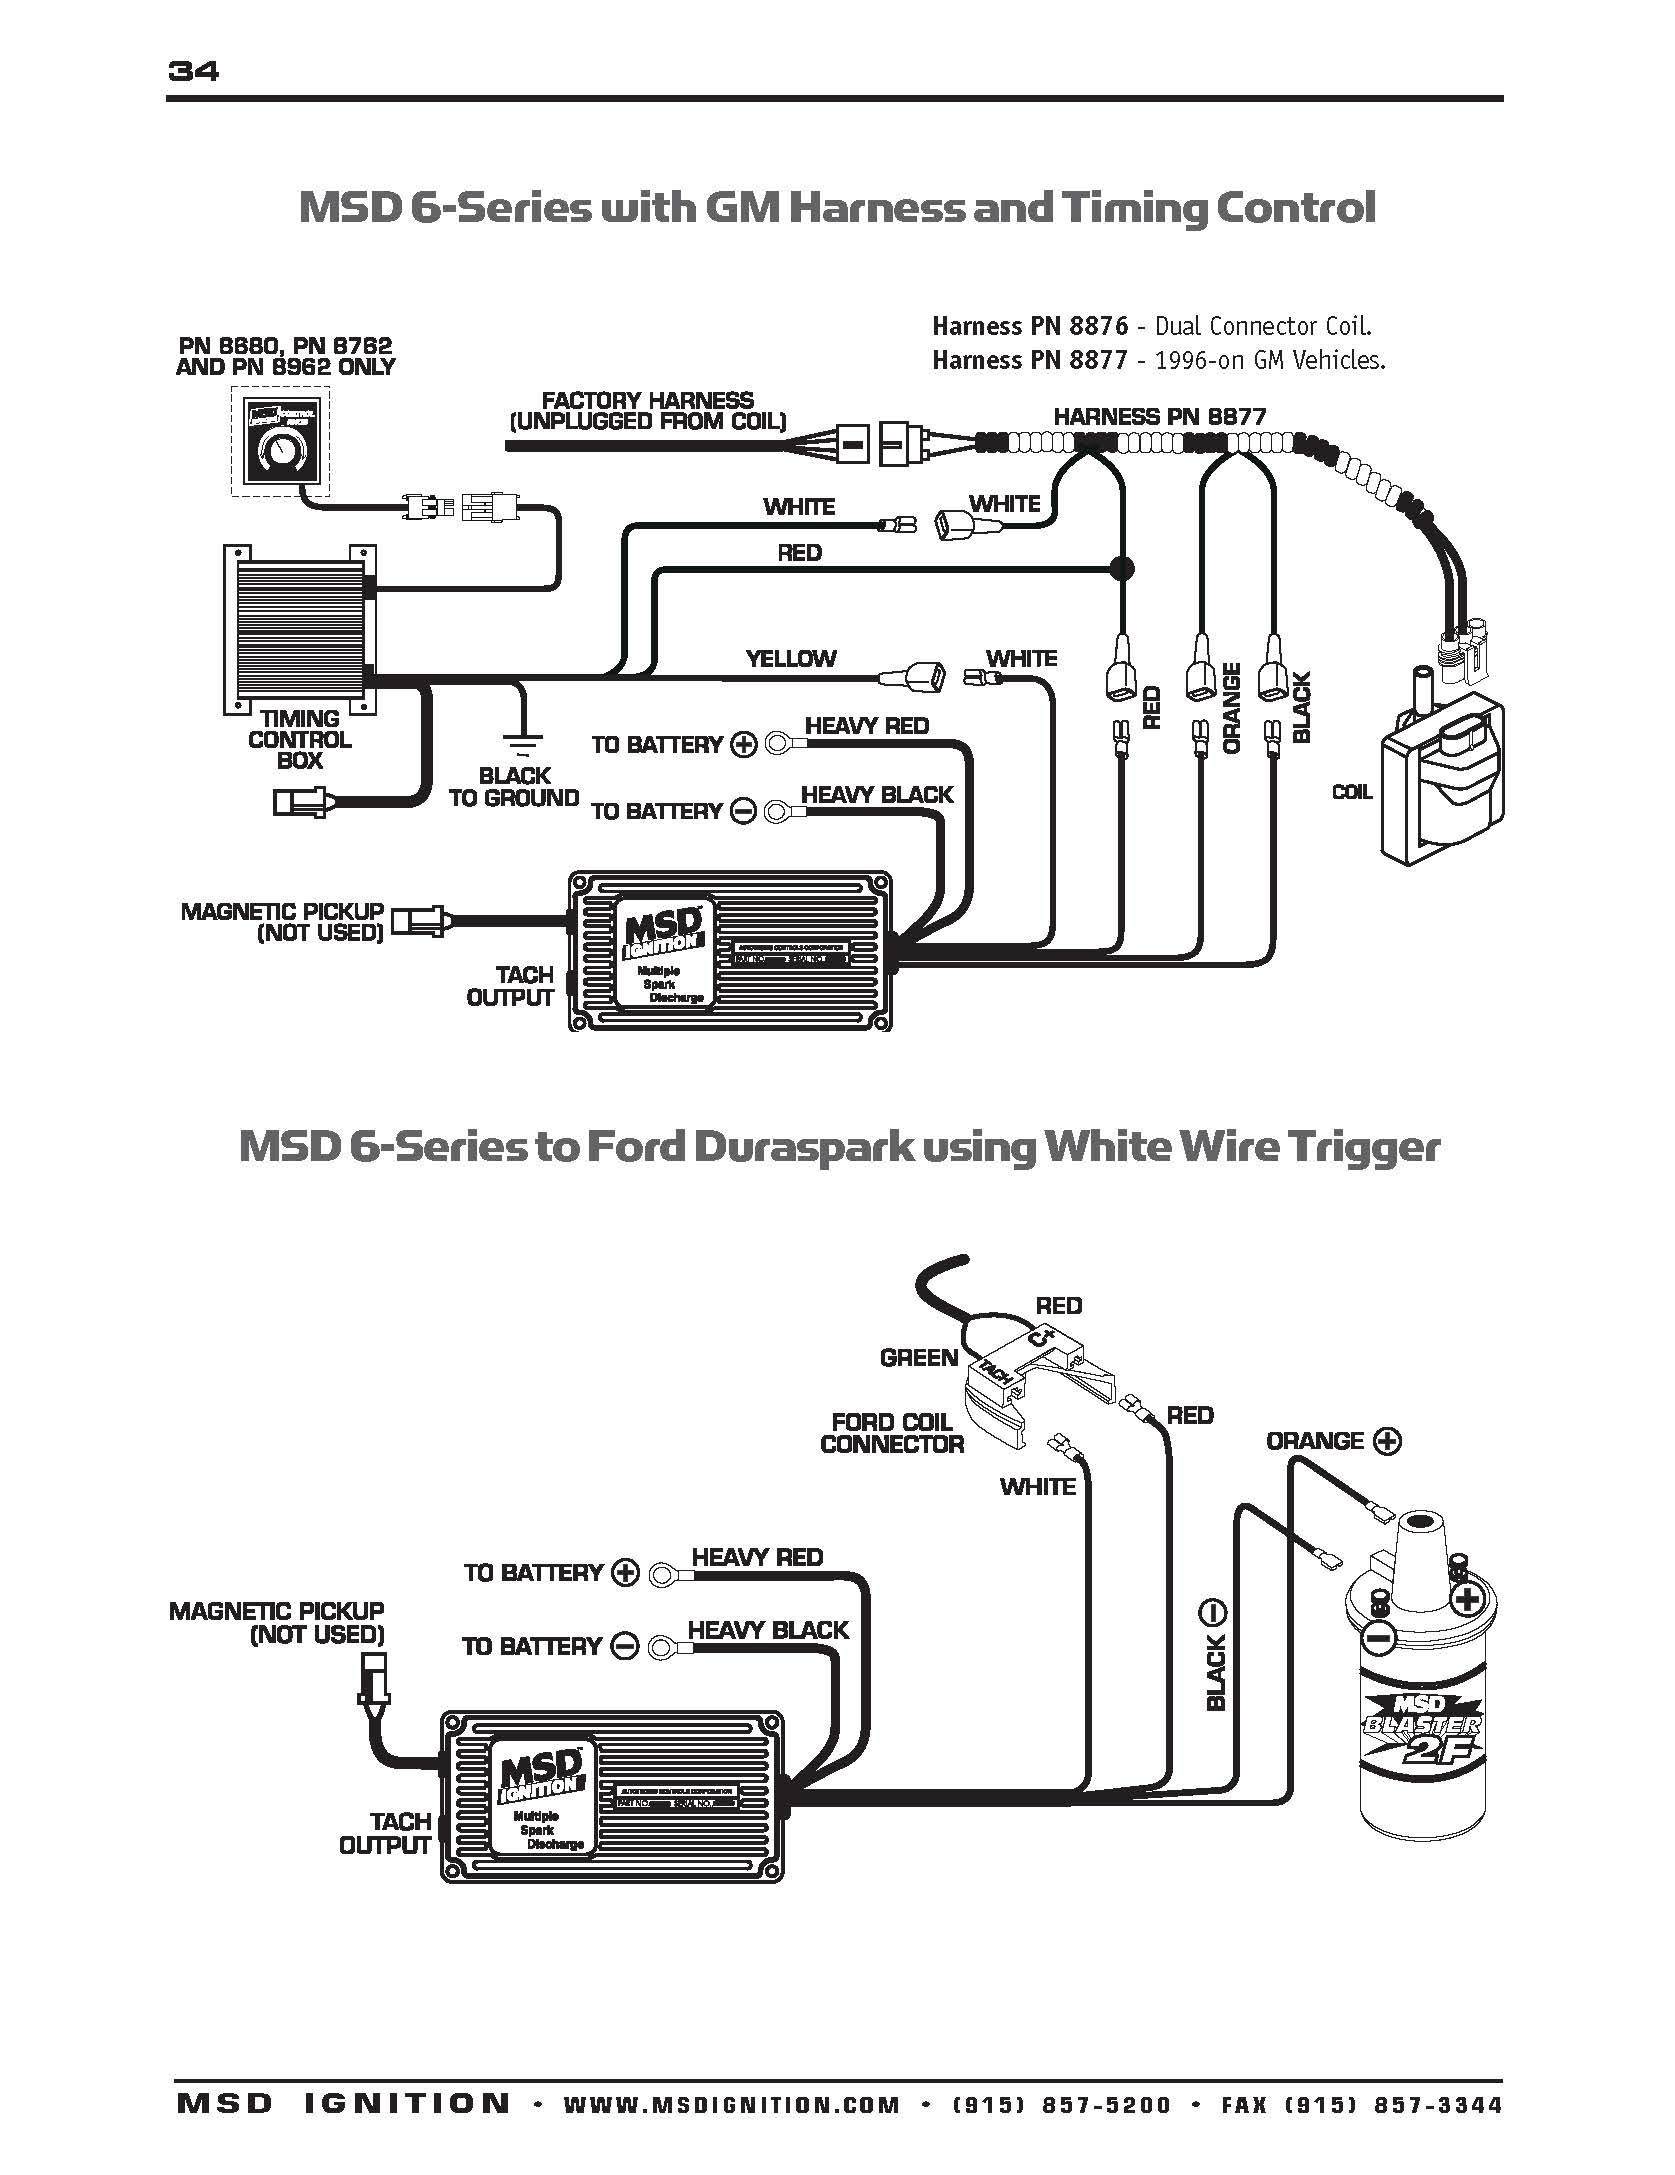 hight resolution of msd ballast wiring diagram wiring diagram used msd ballast wiring diagram wiring library msd ballast wiring